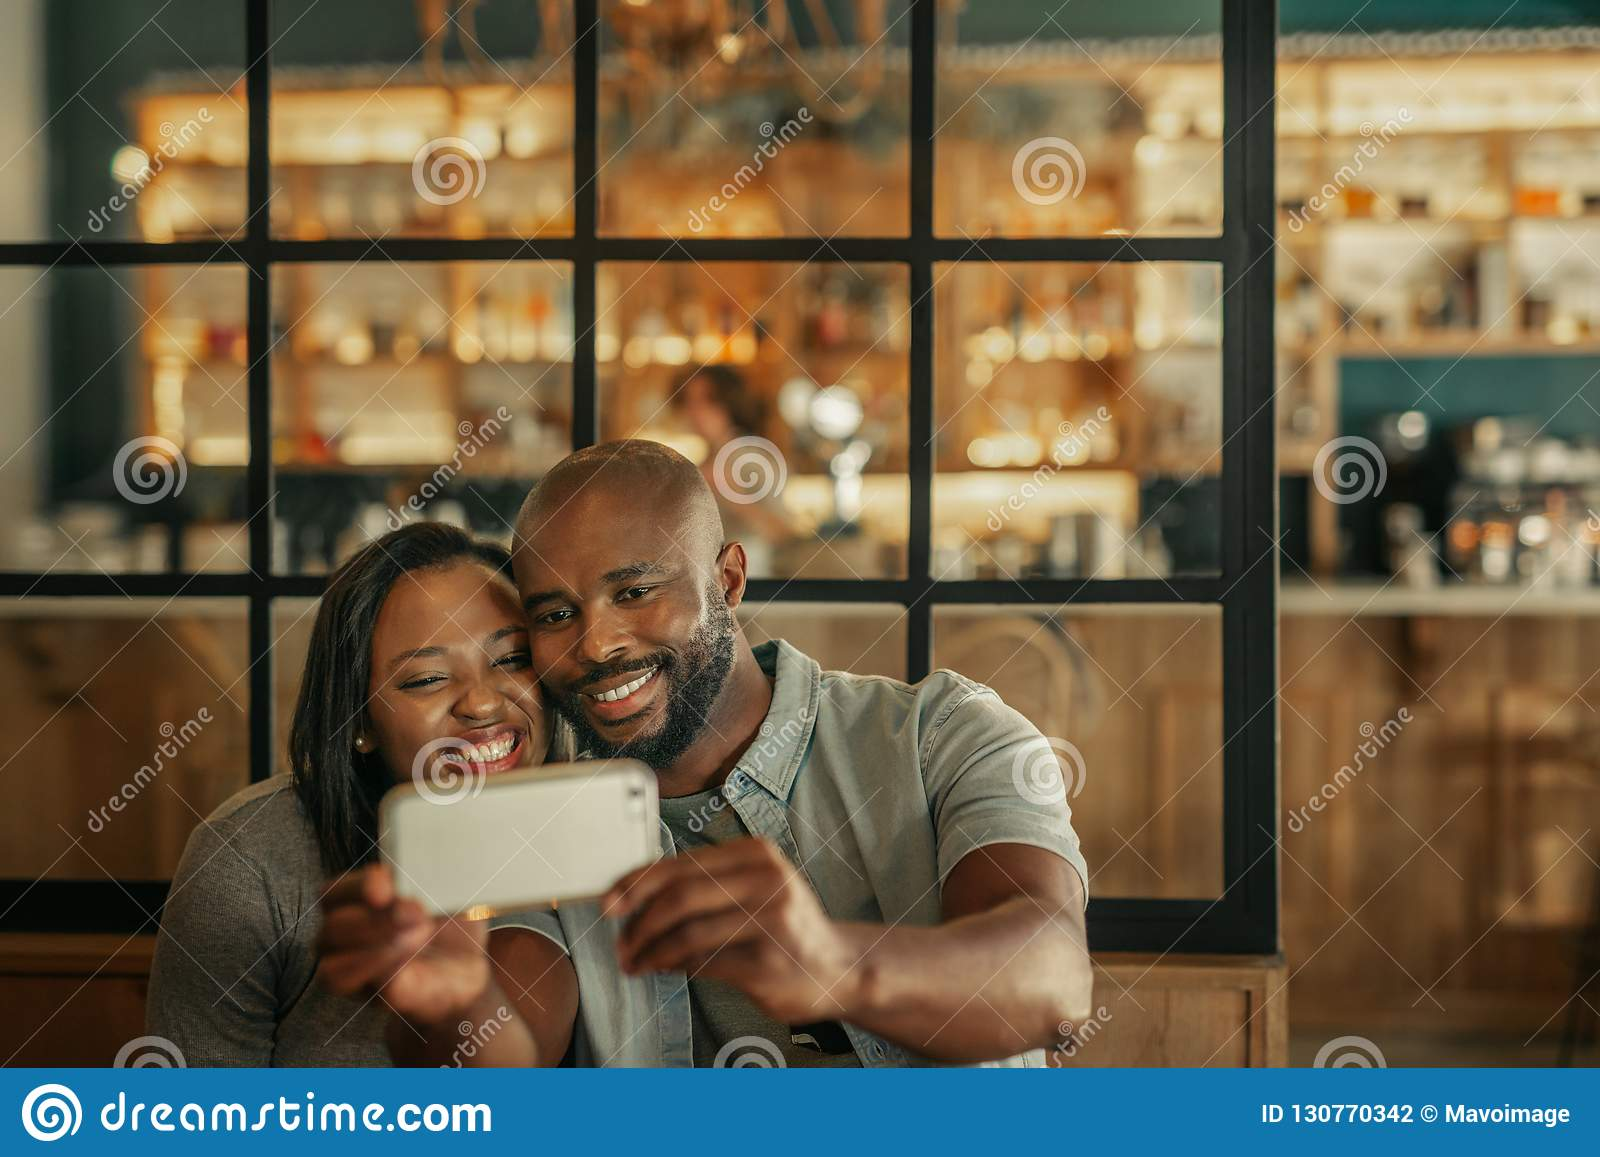 Smiling young couple taking selfies together in a bar